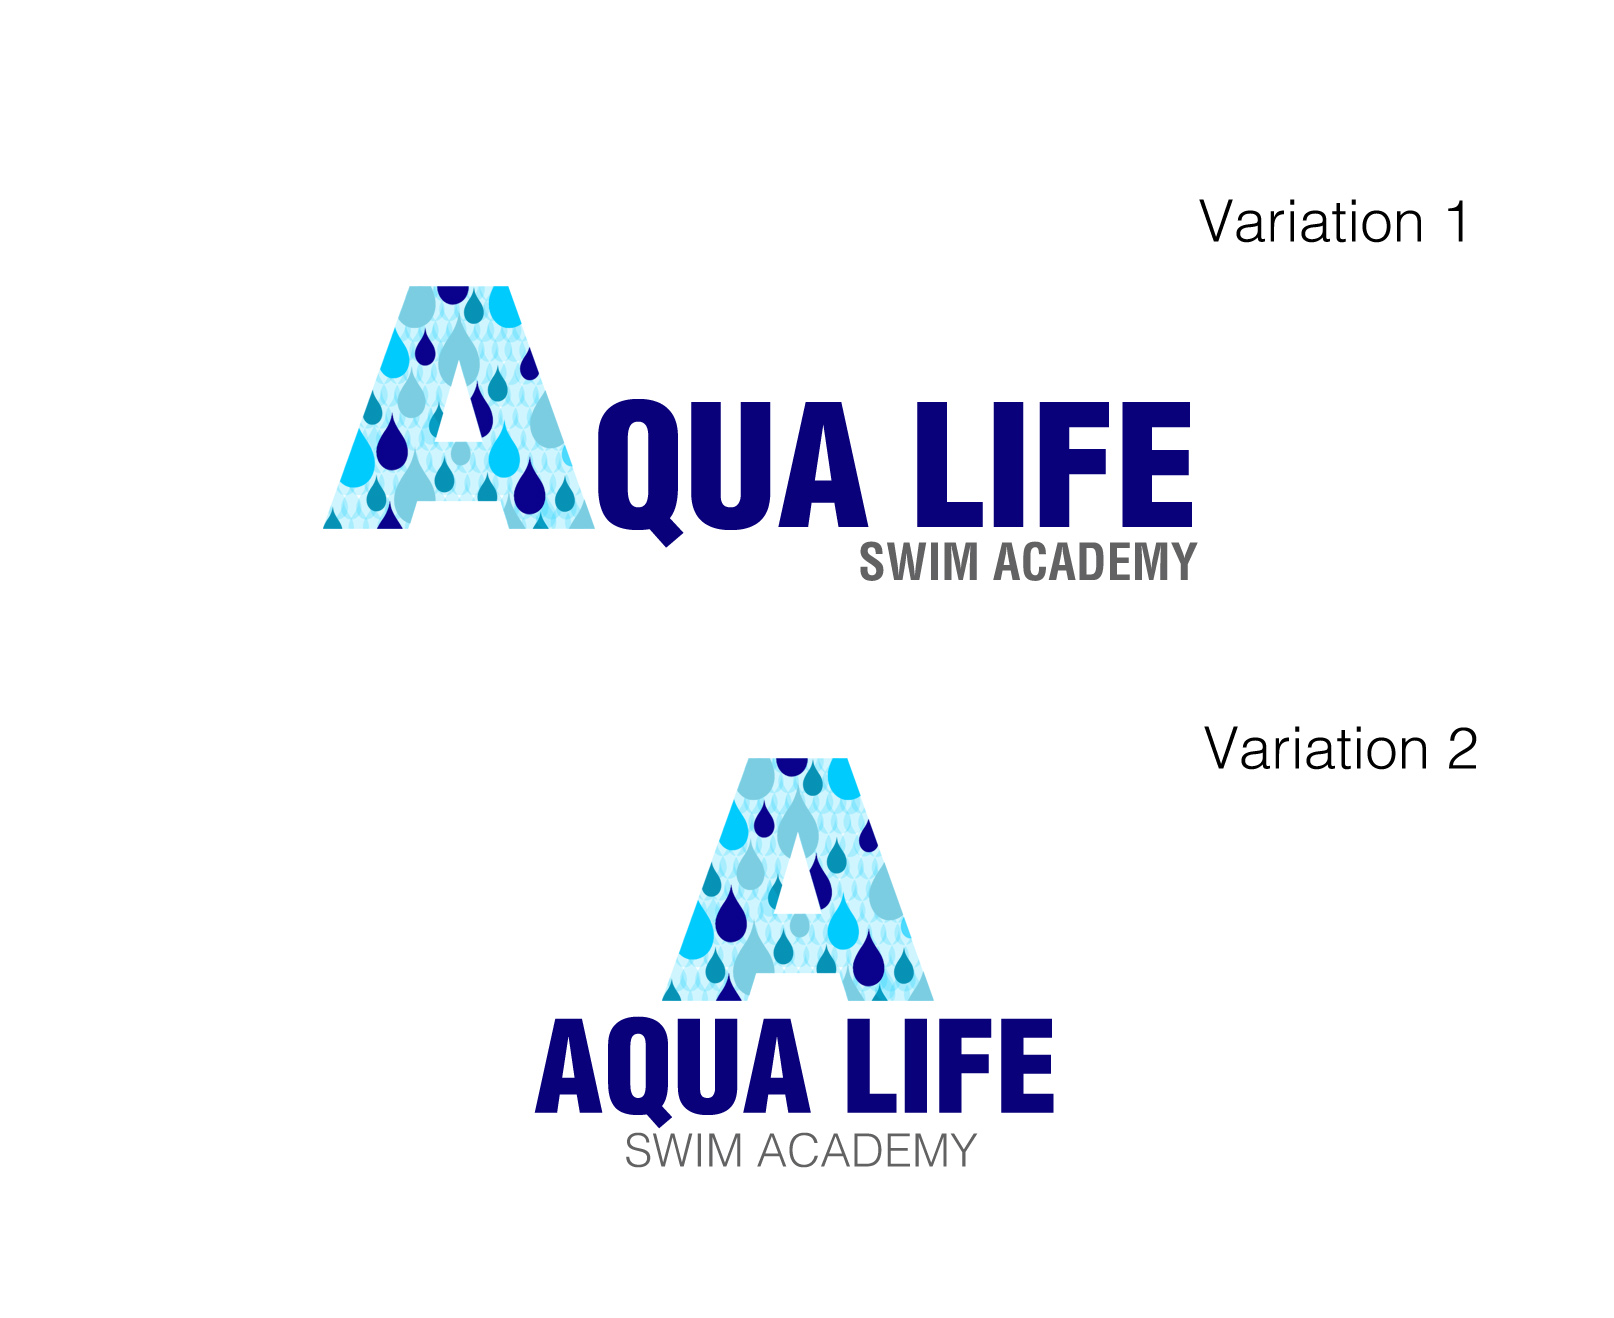 Logo Design by Lama Creative - Entry No. 140 in the Logo Design Contest Artistic Logo Design Wanted for The Aqua Life Swim Academy.